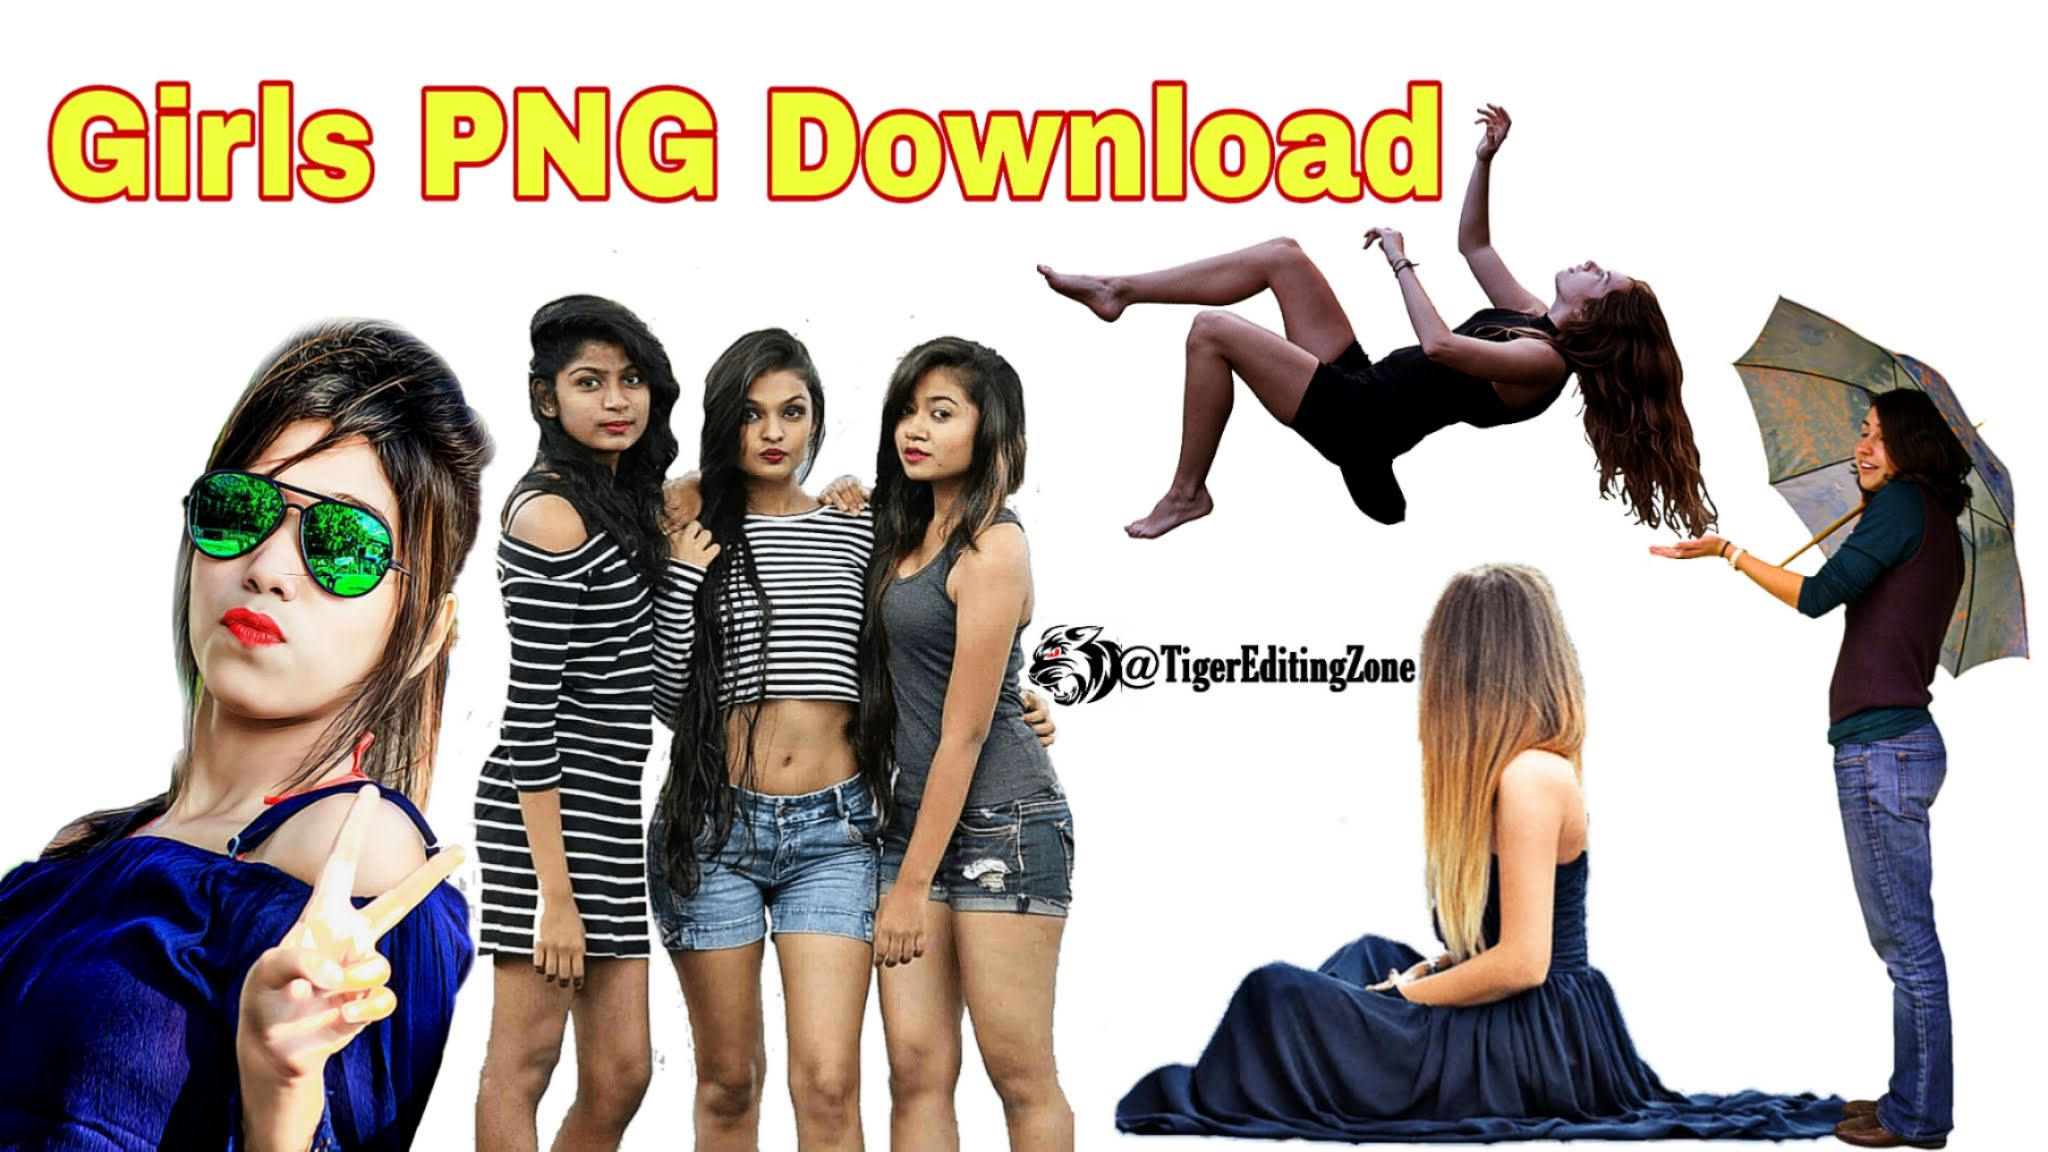 200+ Girls PNG Download for Editing in PicsArt | Latest Girls PNG HD Quality 2021